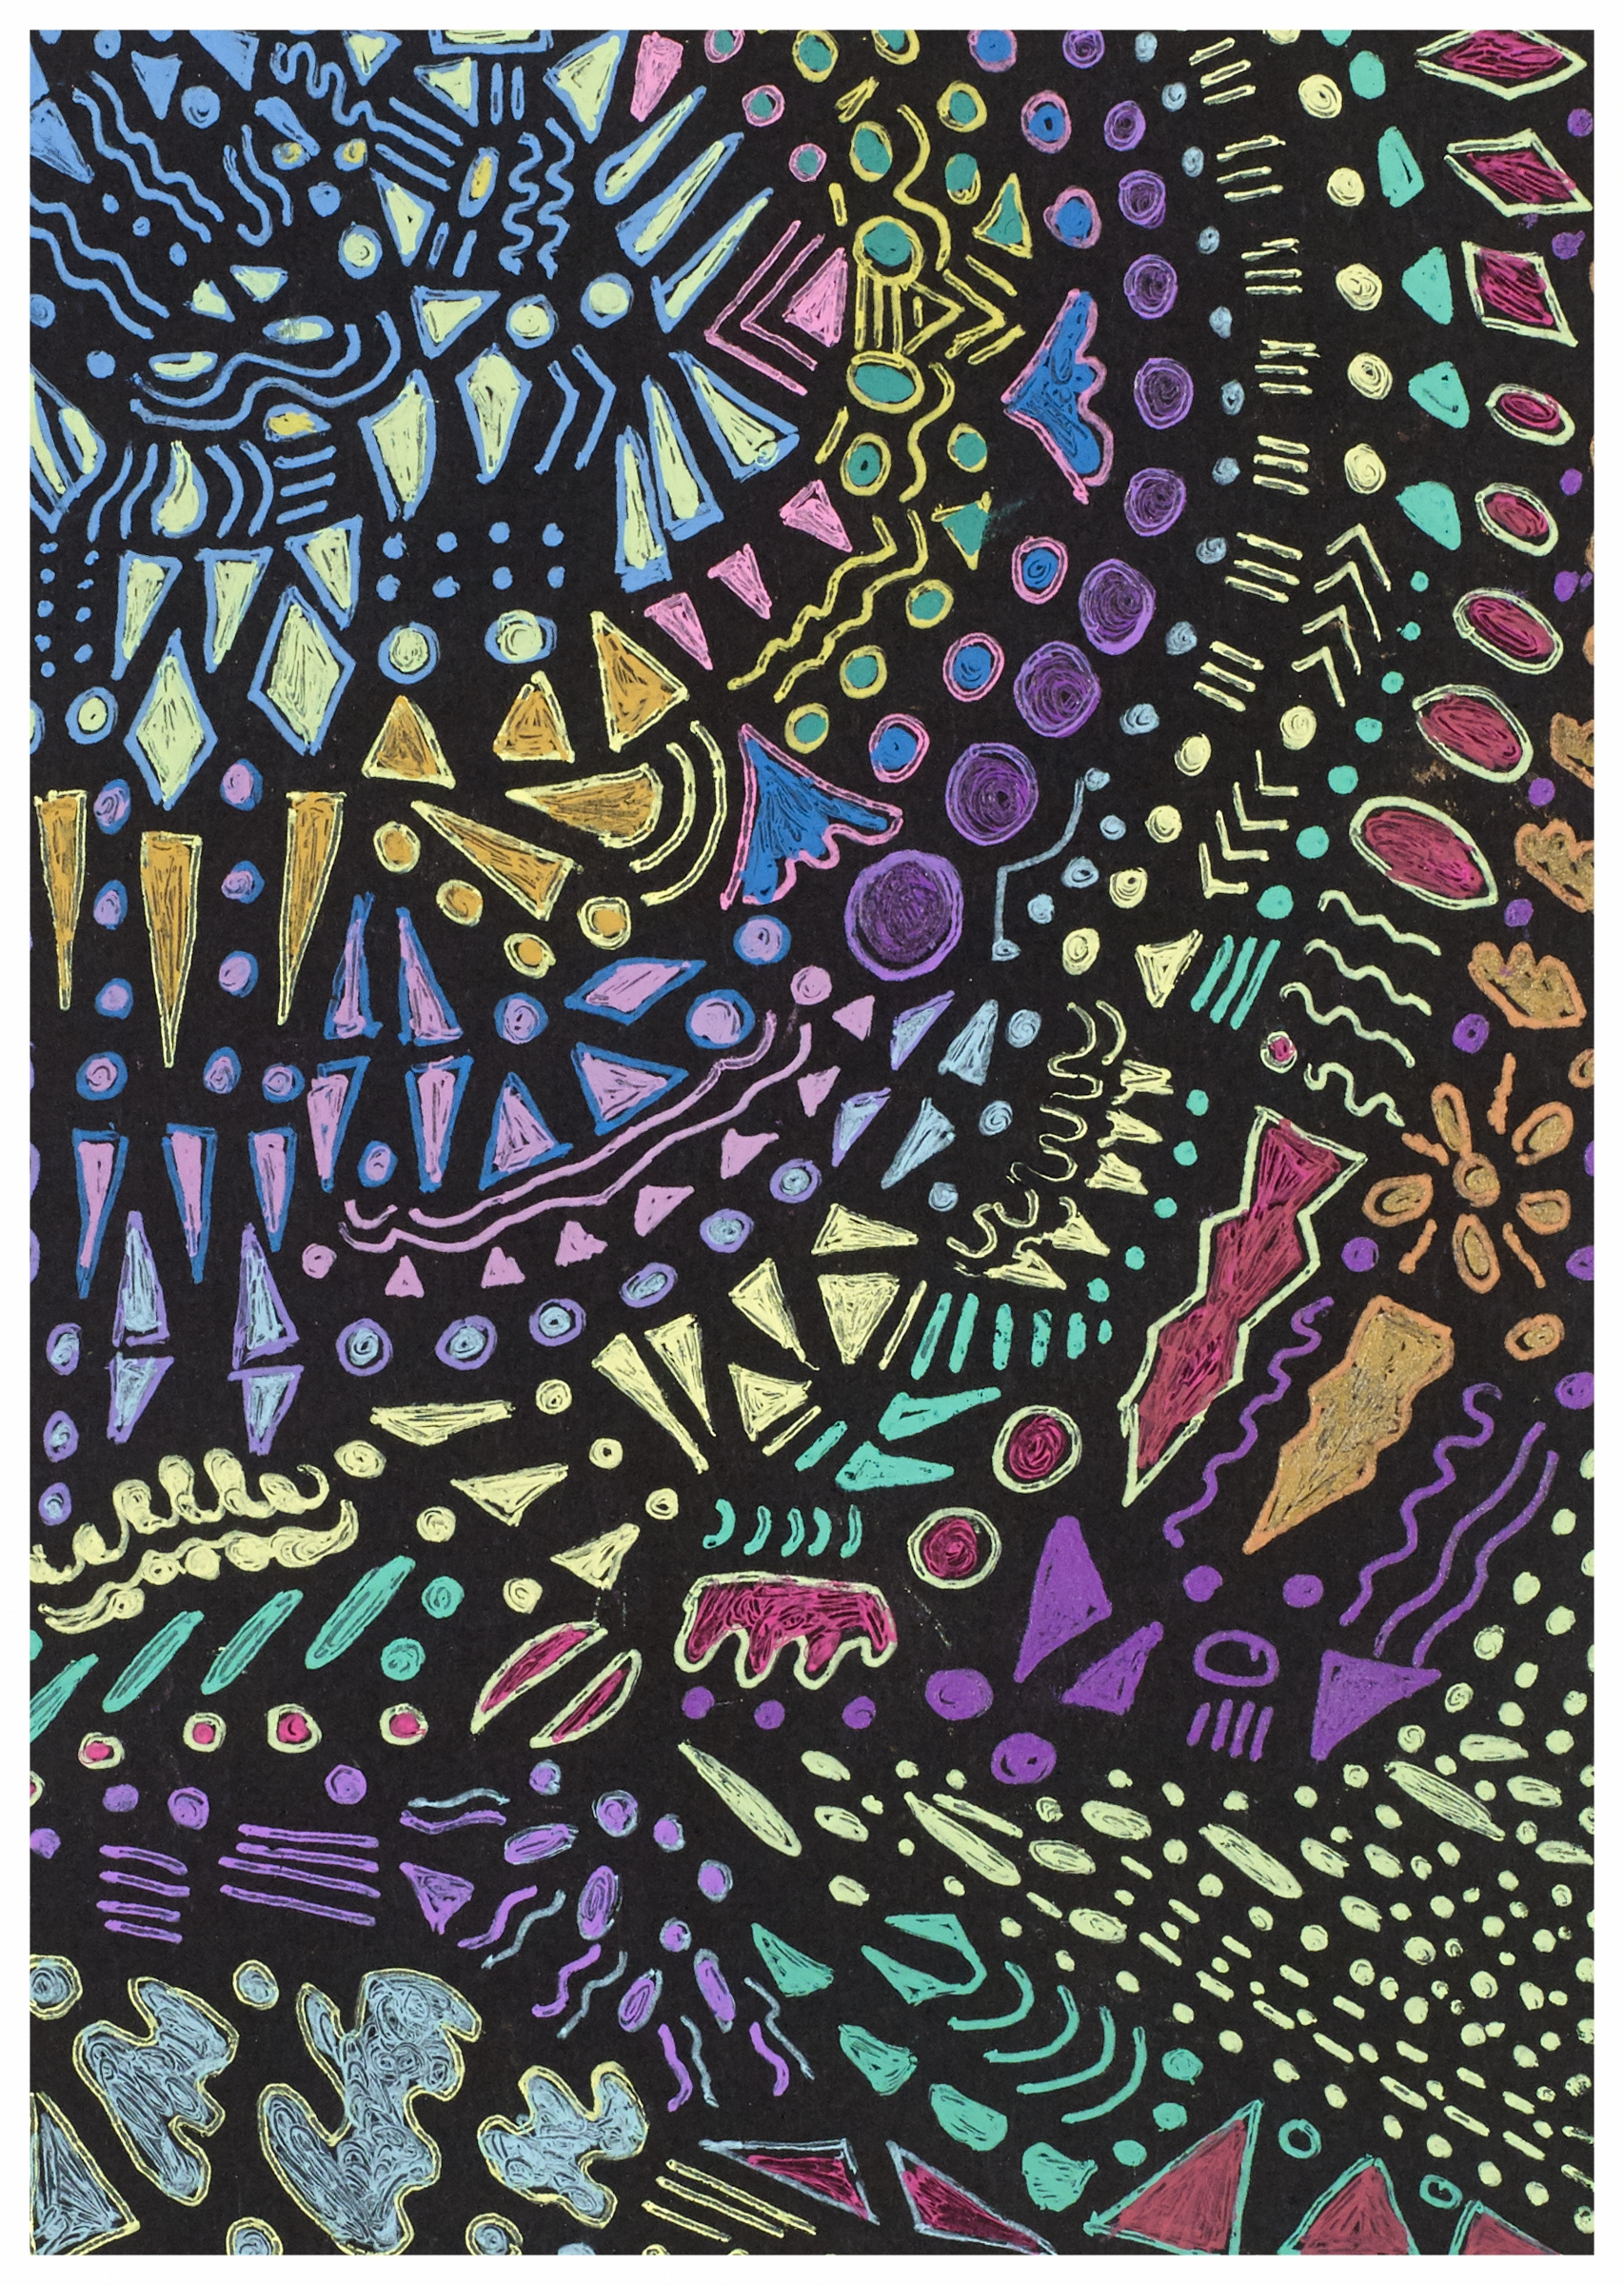 Stained Glass Abstract 2000 6x4 Gel Pens